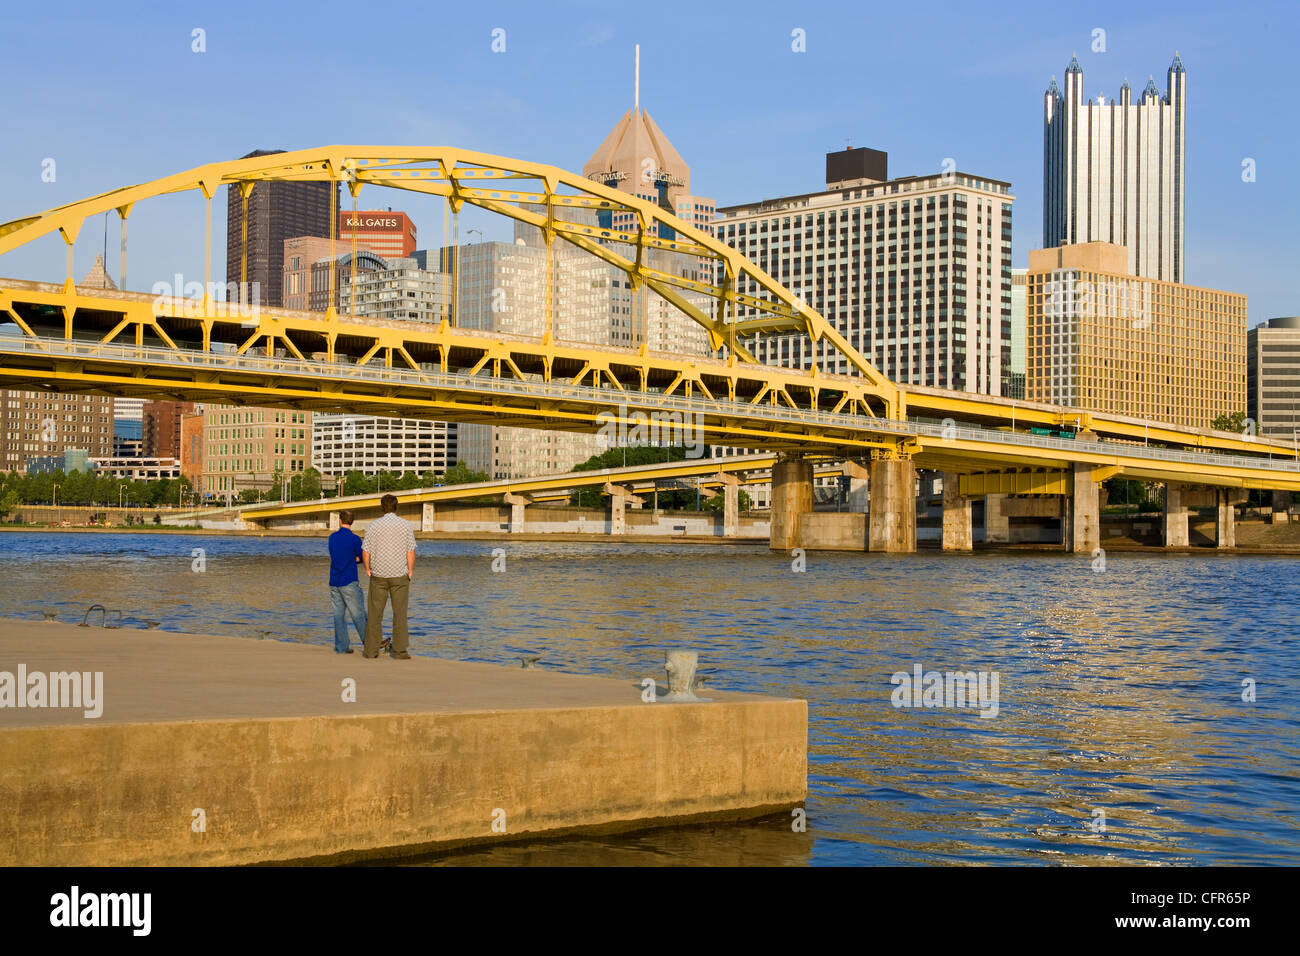 Fort Duquesne Bridge over the Allegheny River, Pittsburgh, Pennsylvania, United States of America, North America - Stock Image